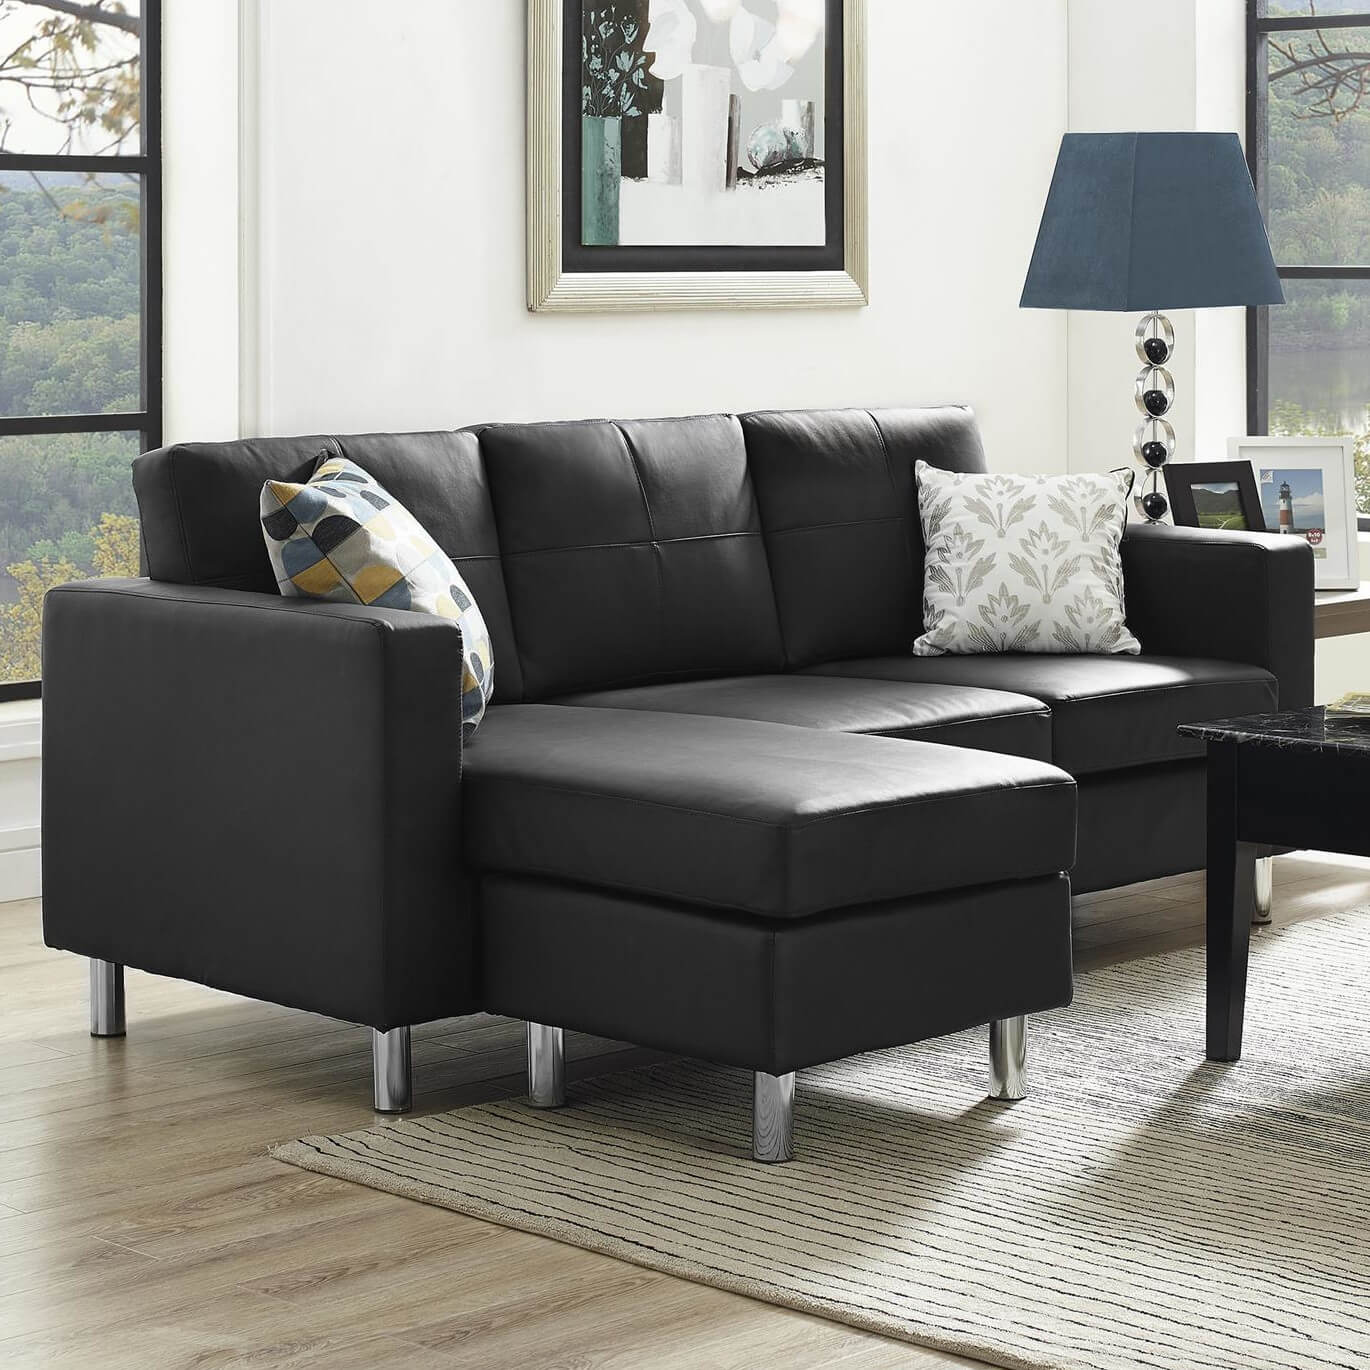 13 sectional sofas under 500 several styles for Black microfiber chaise